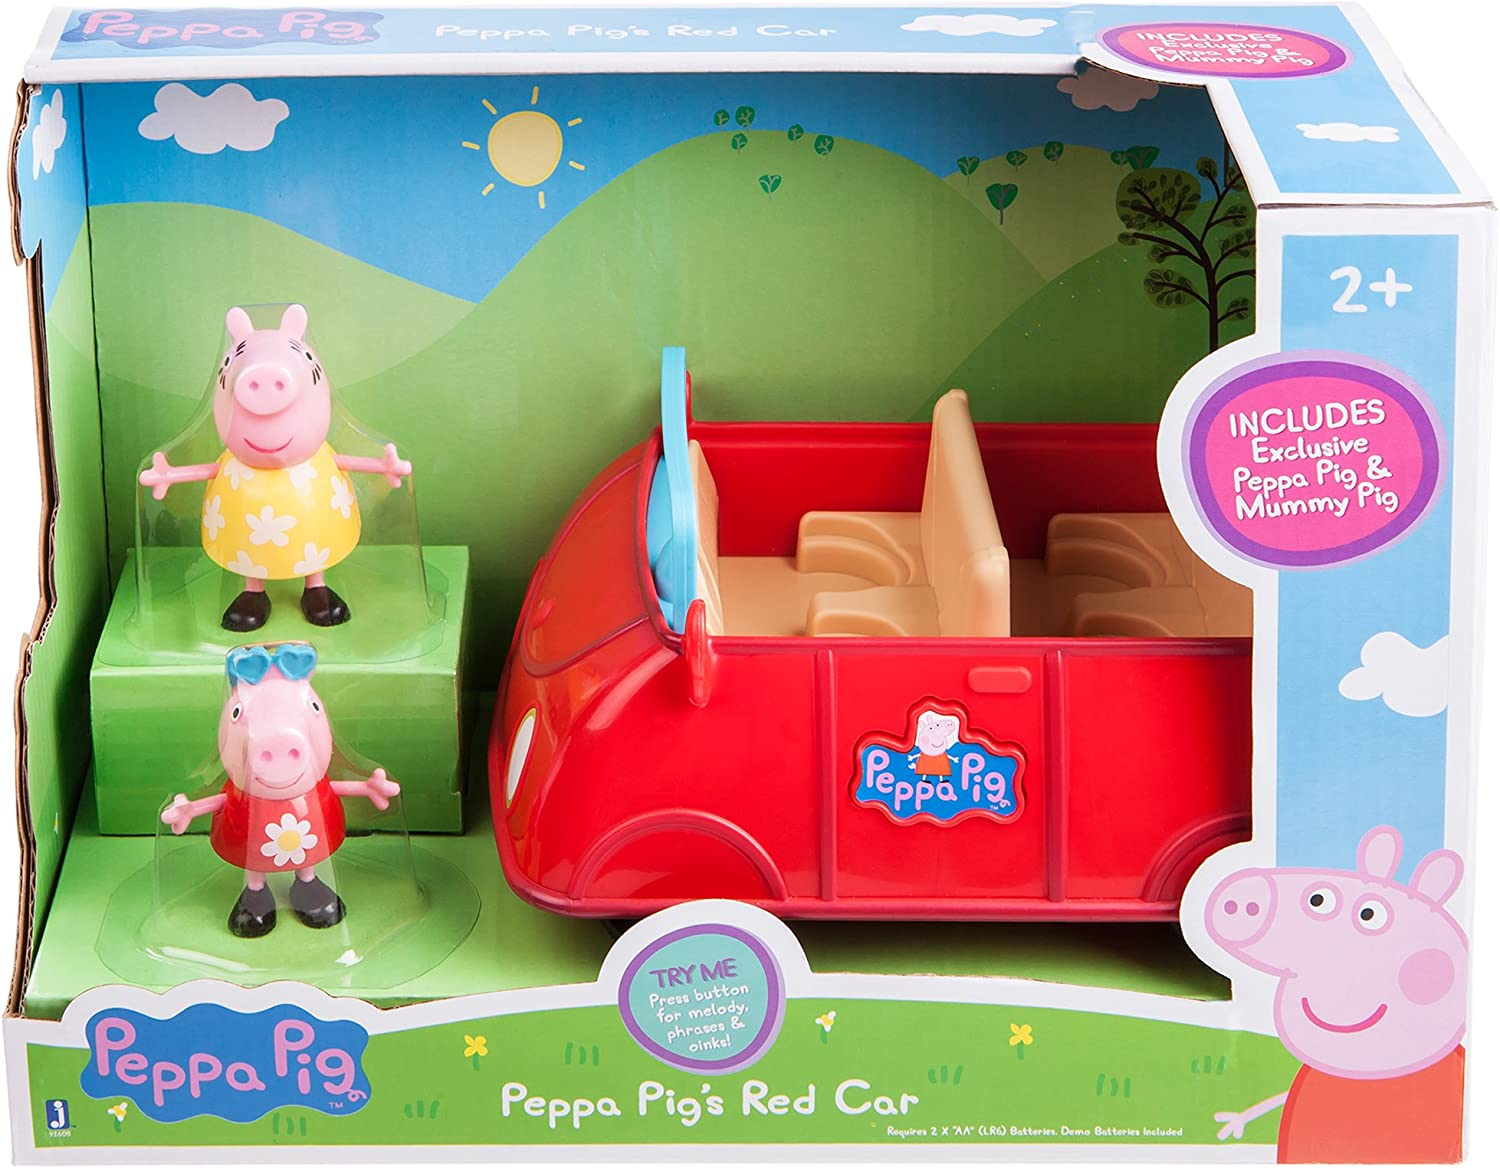 Little Red Car With 2 Exclusive Figures Mom /& Peppa Complete Set Peppa Pig